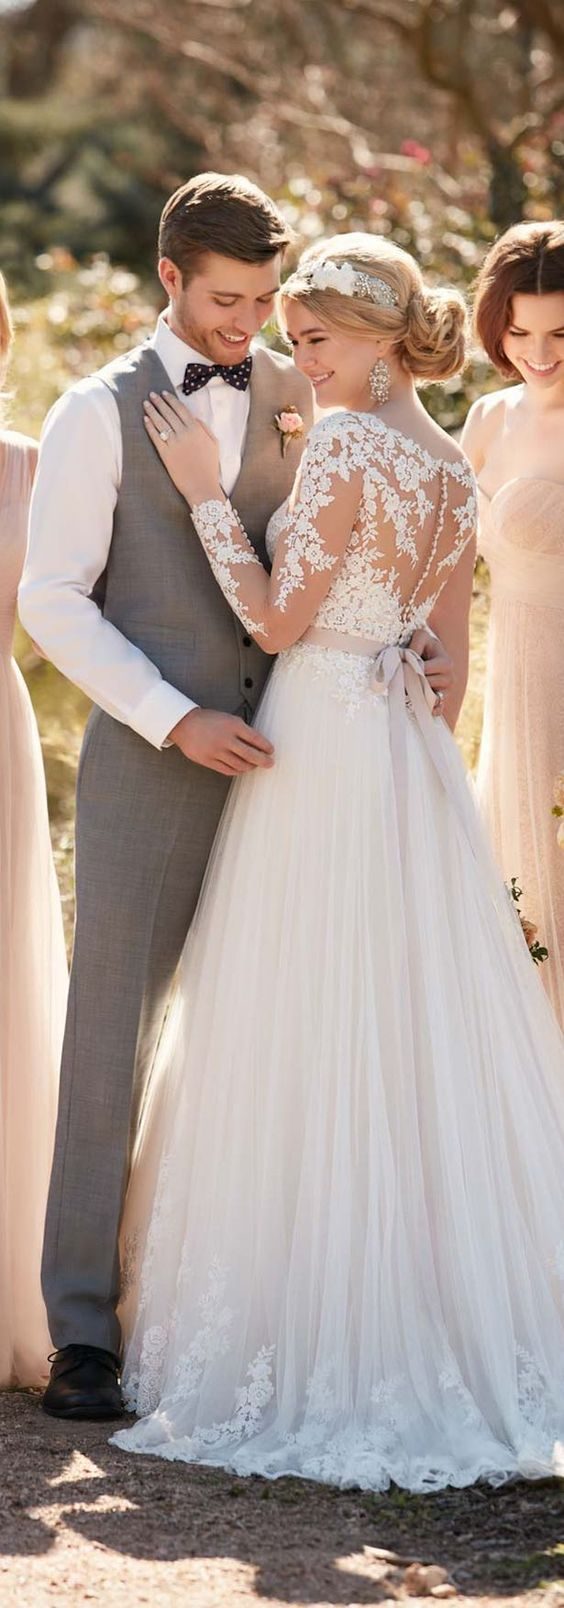 lace ball gown with a lace illusion back and a row of tiny buttons